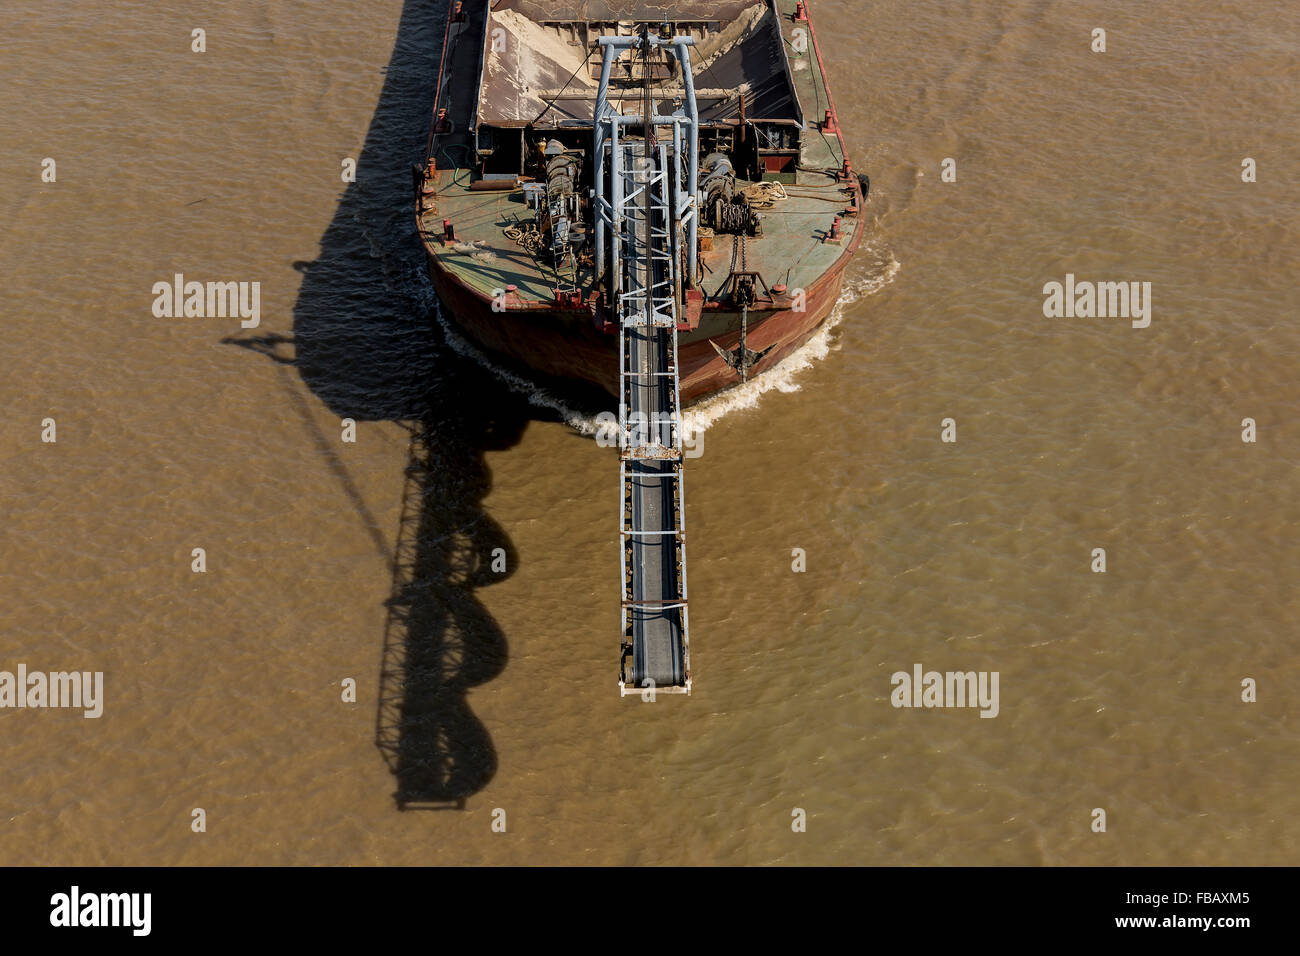 Construction Ship with a Conveyor Belt - Stock Image